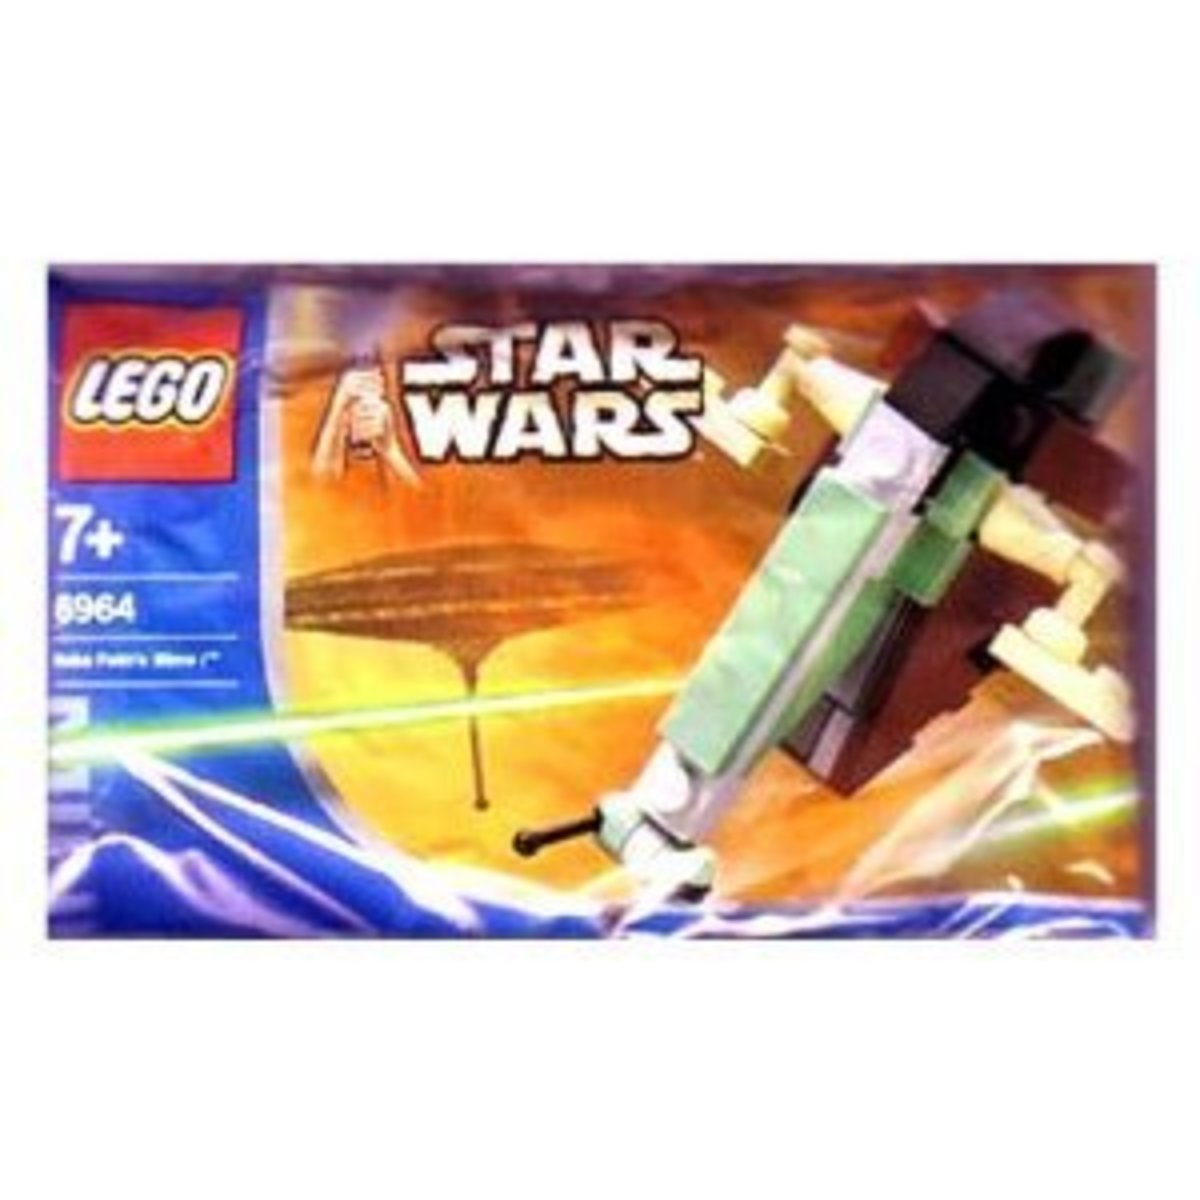 LEGO Star Wars Boba Fett Slave 1 6964 Bag